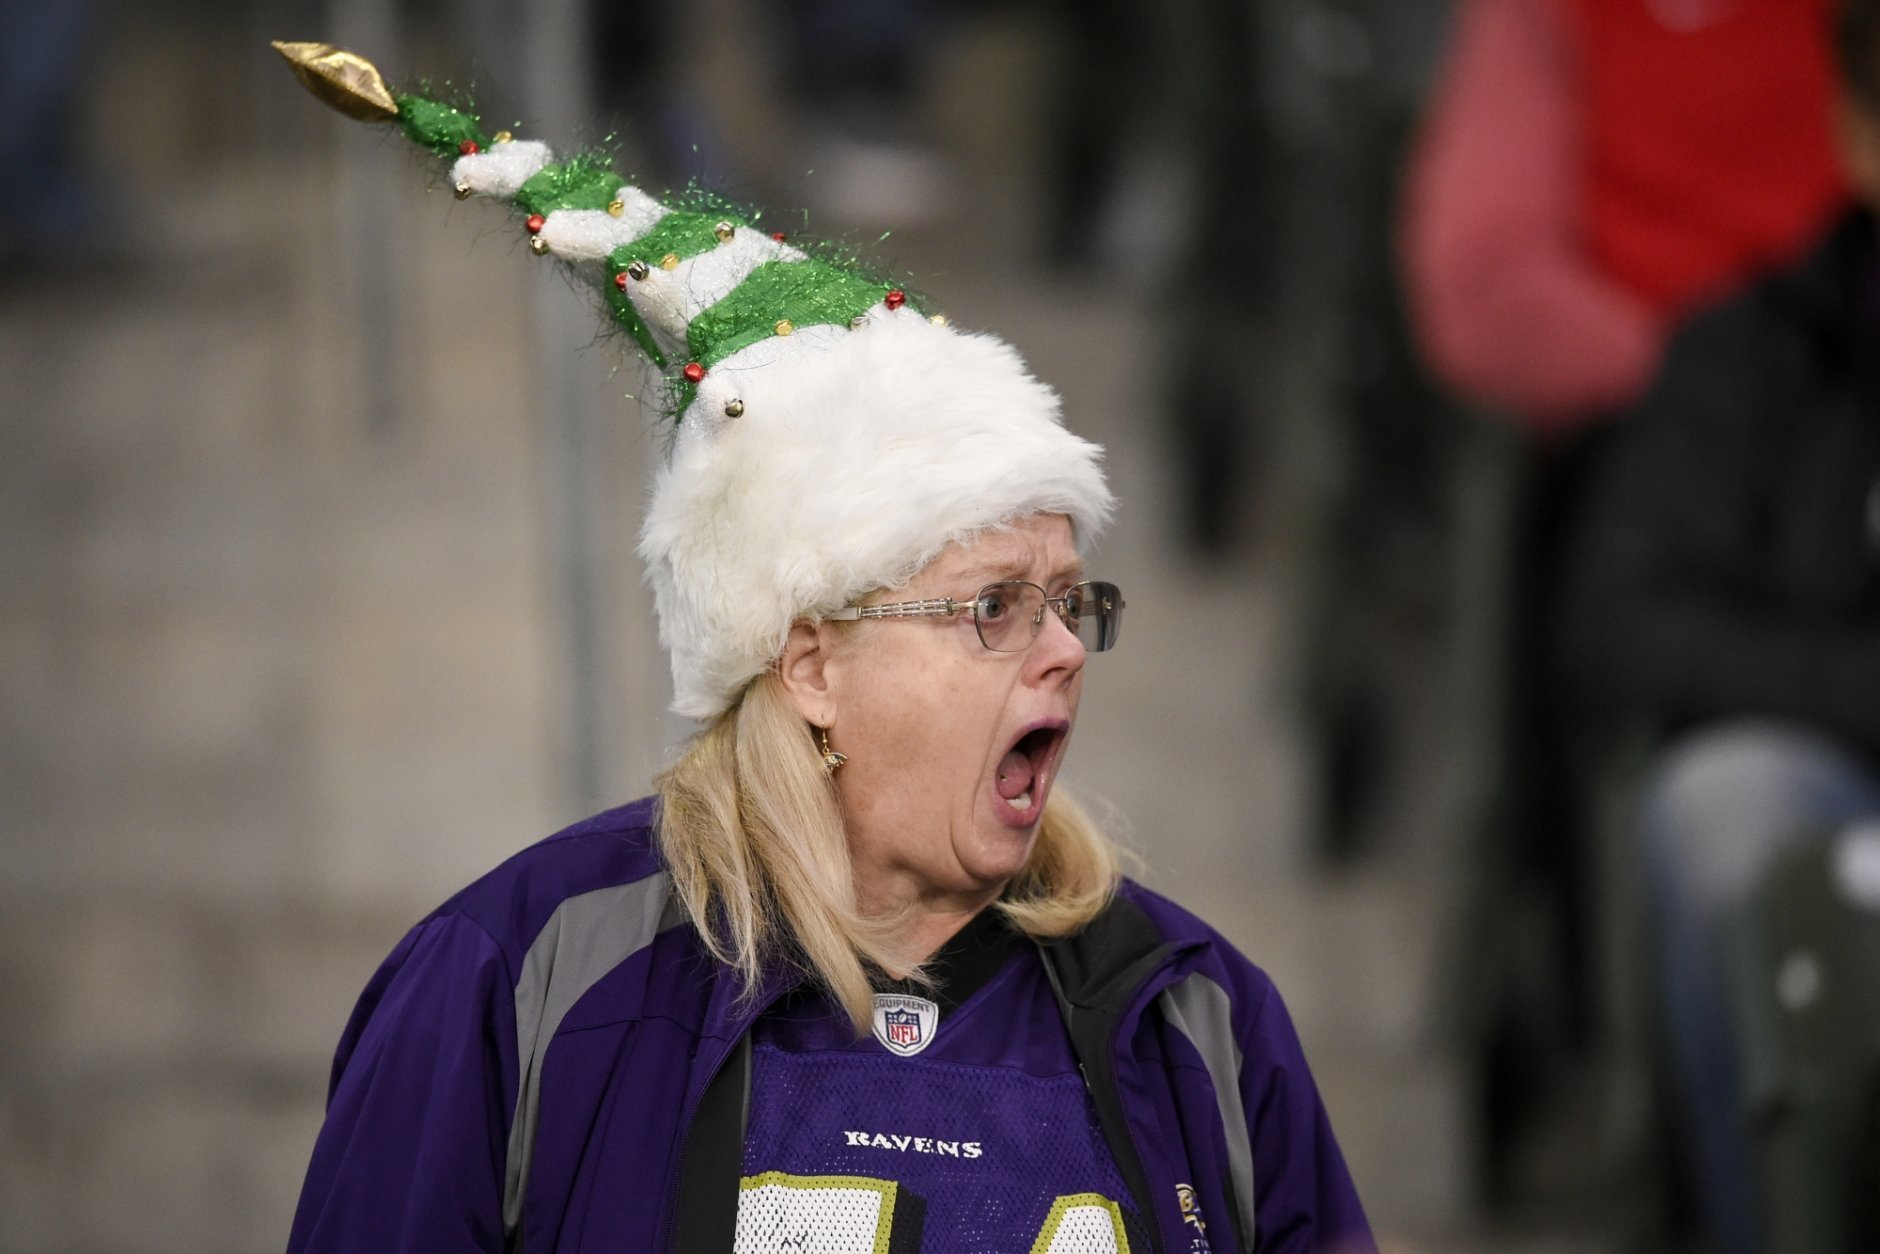 A Baltimore Ravens fan yells during warms ups before an NFL football game against the Los Angeles Chargers Saturday, Dec. 22, 2018, in Carson, Calif. (AP Photo/Kelvin Kuo)